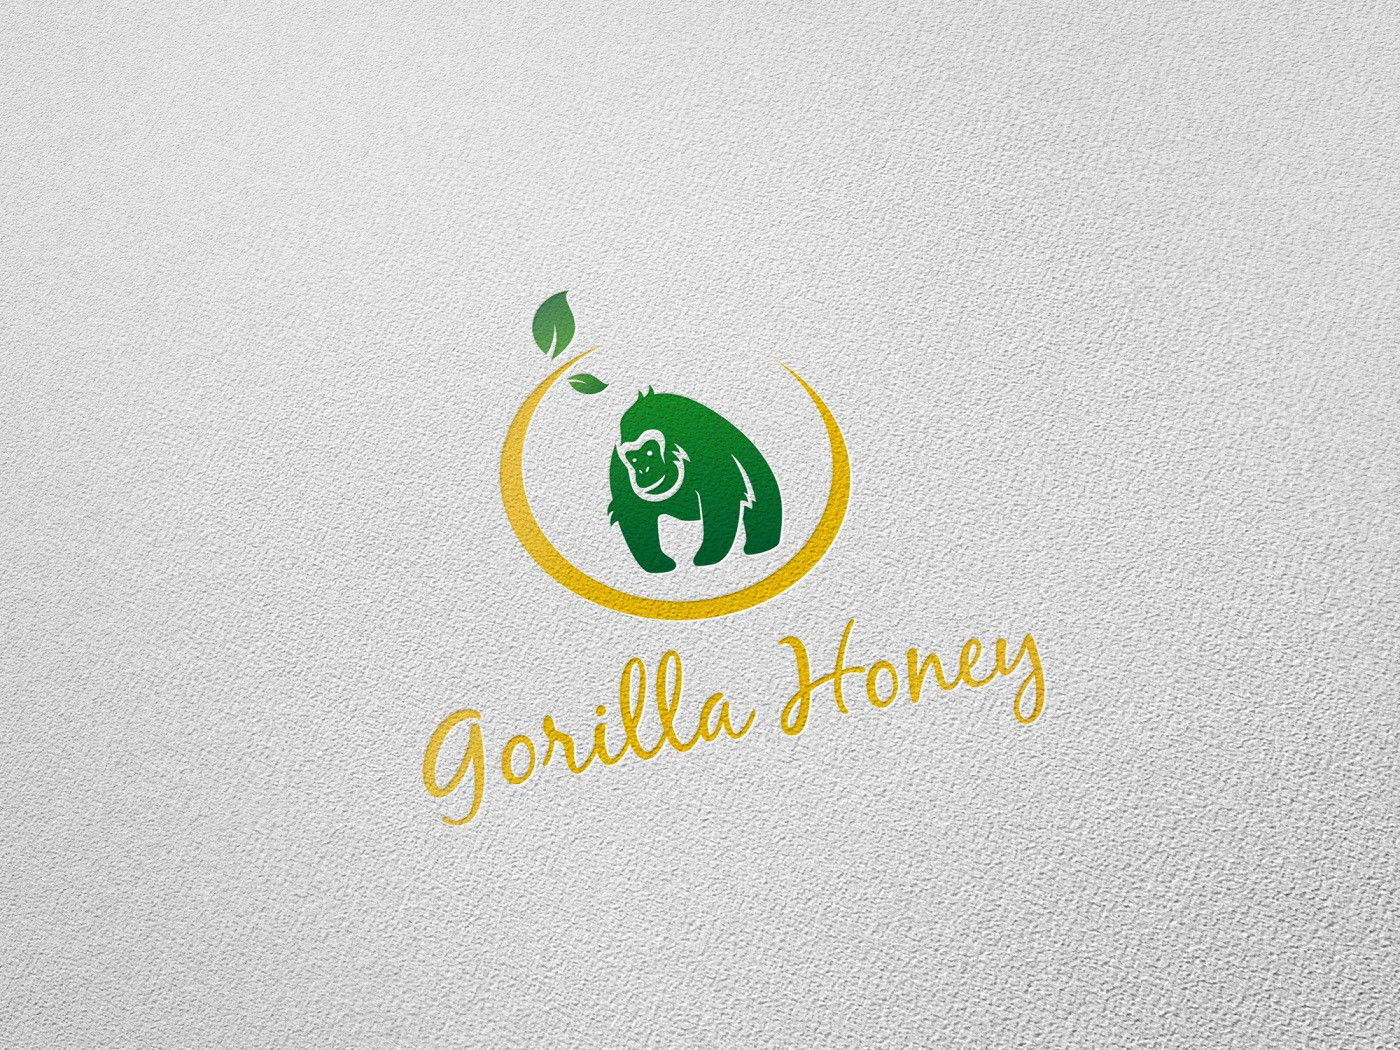 Creative logo design contest for Gorilla Honey!